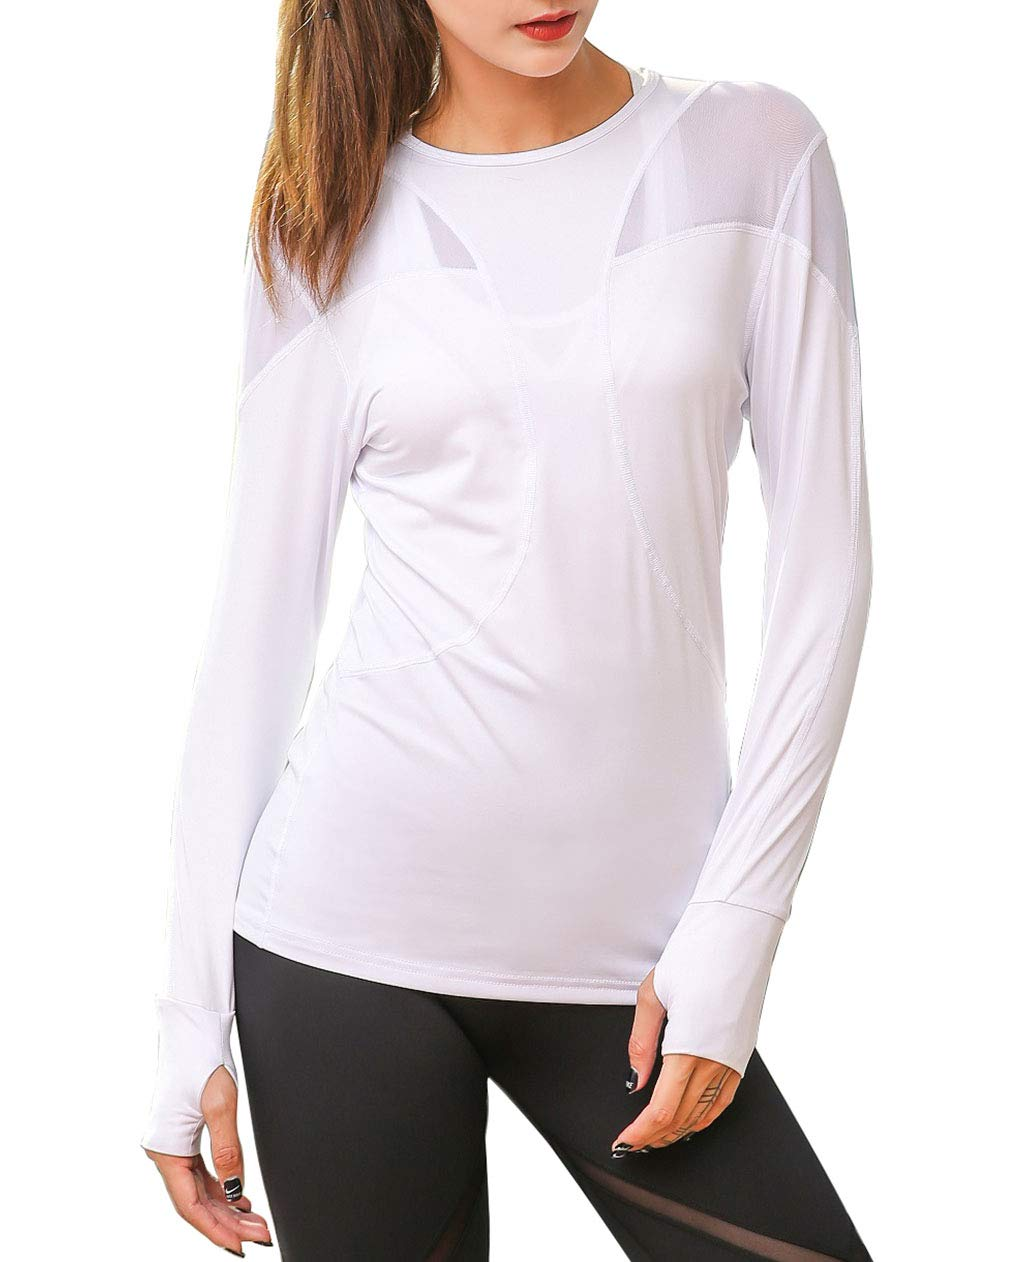 UDIY Women's Seamless Active Long Sleeve Workout Running Athletic Sports Leisure T-Shirt, White